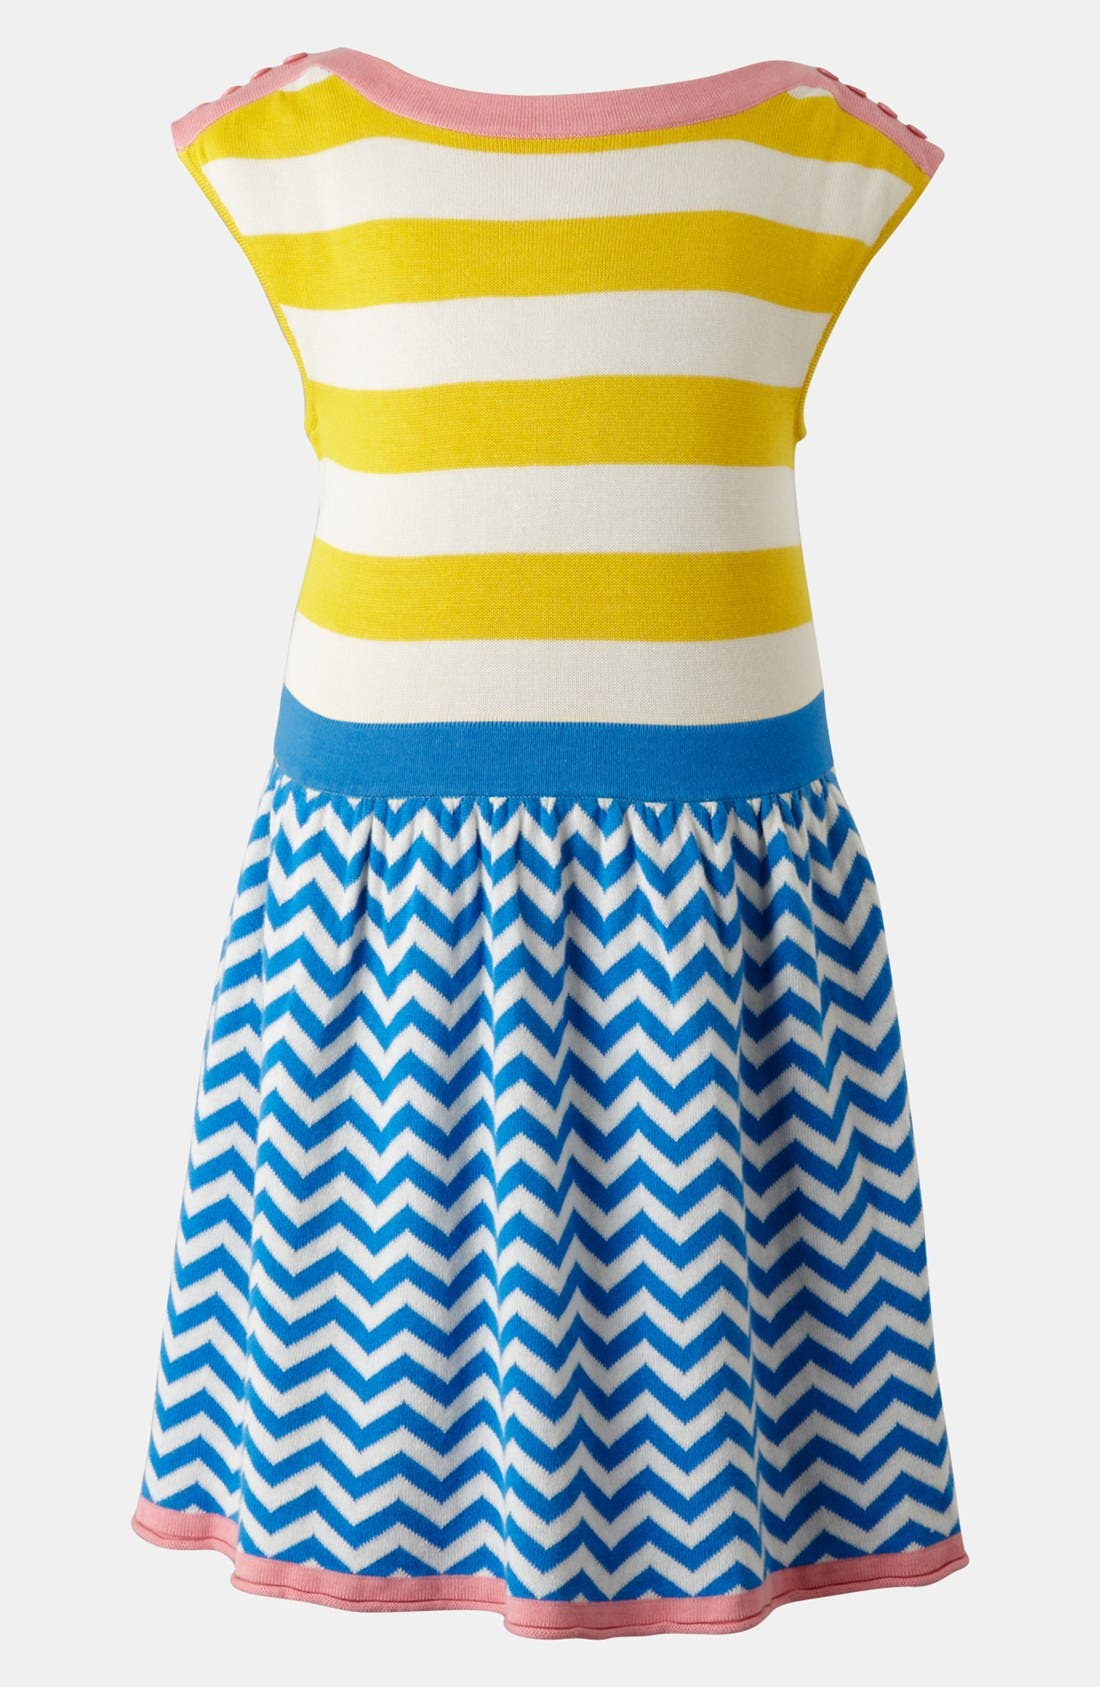 Main Image - Mini Boden 'Colorful Summer' Knit Dress (Toddler)